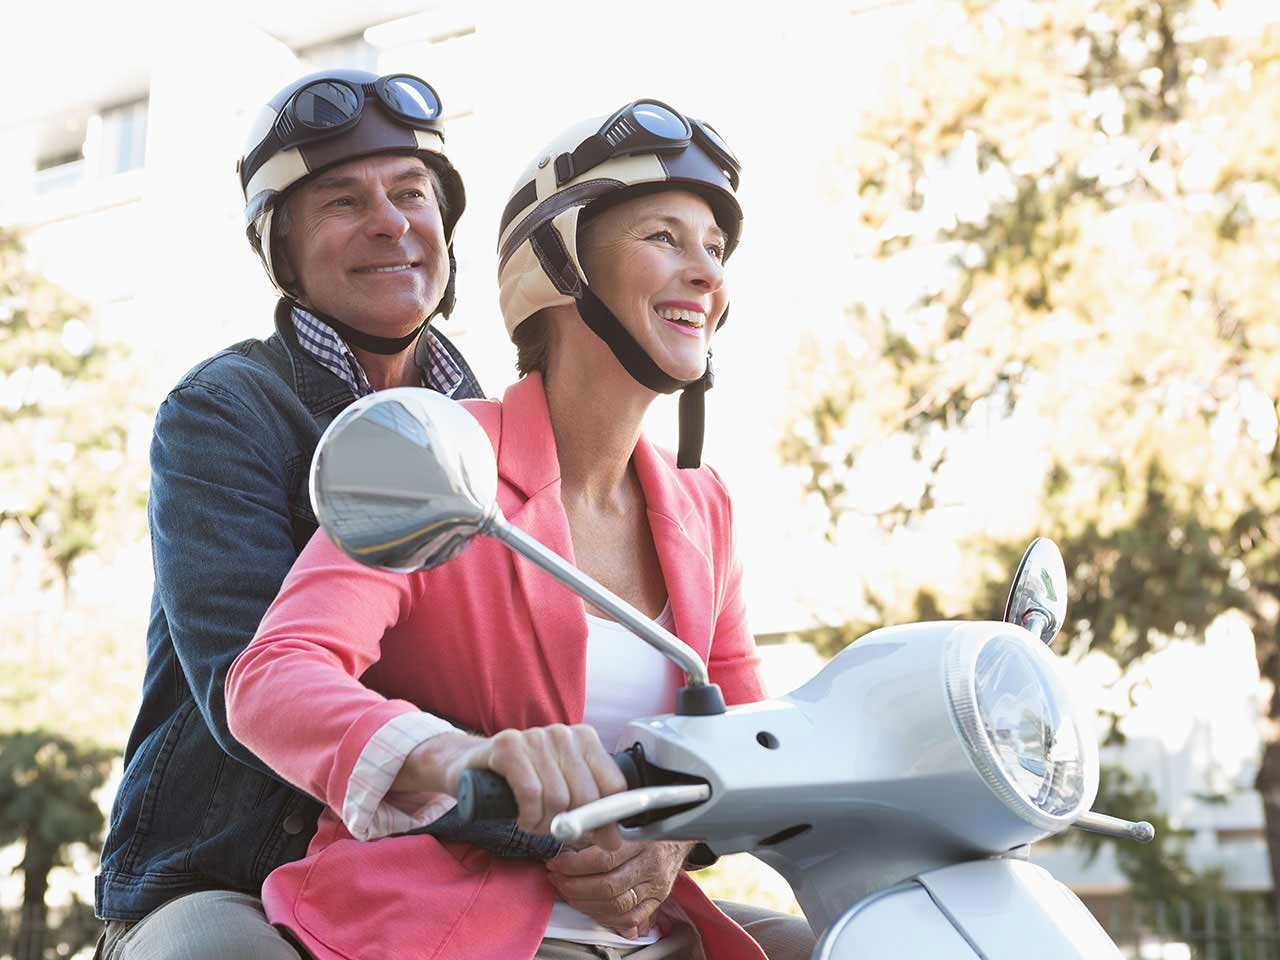 Mature couple on moped